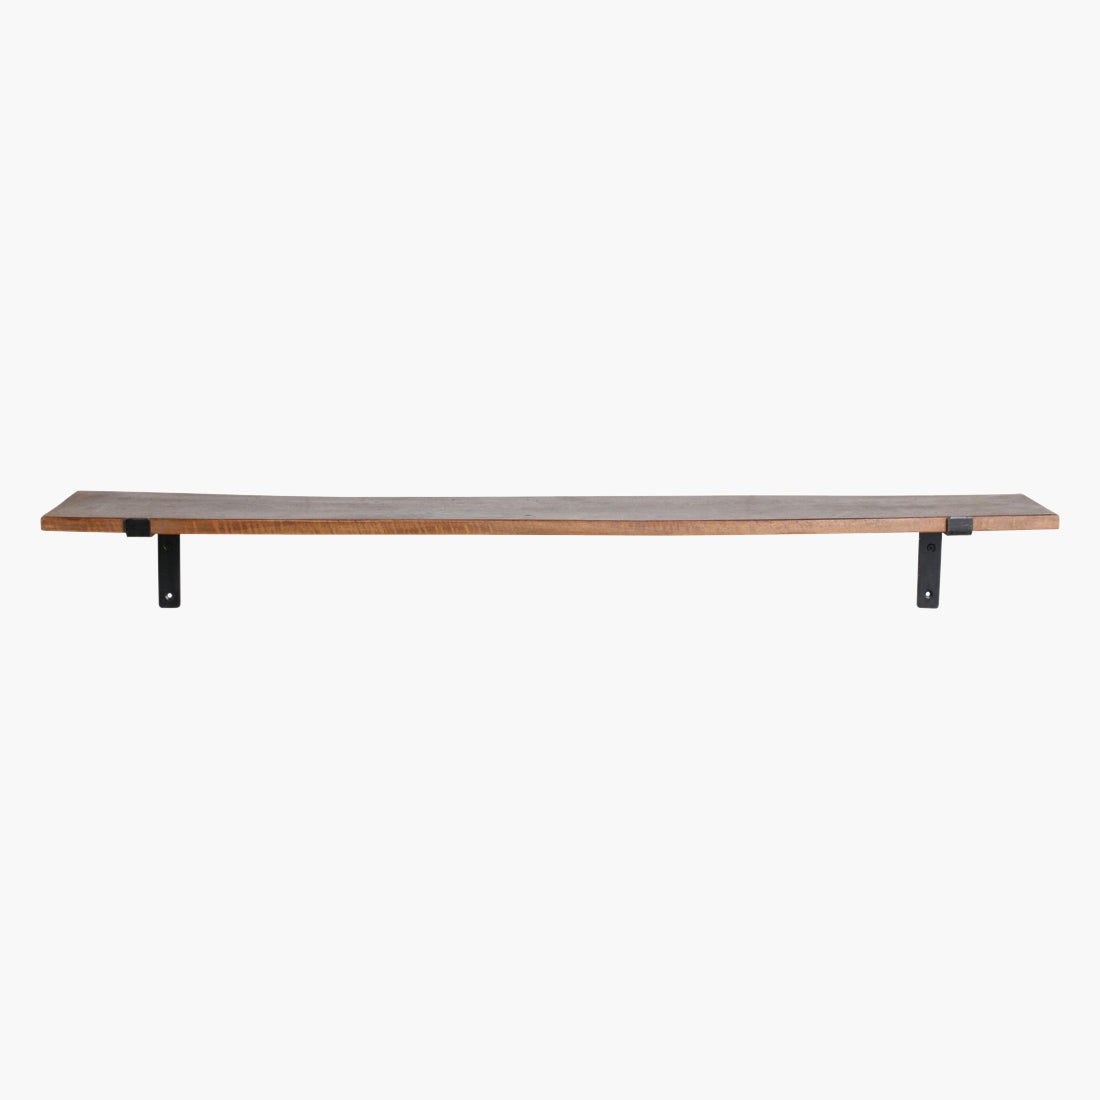 Factory wall shelf 120cm